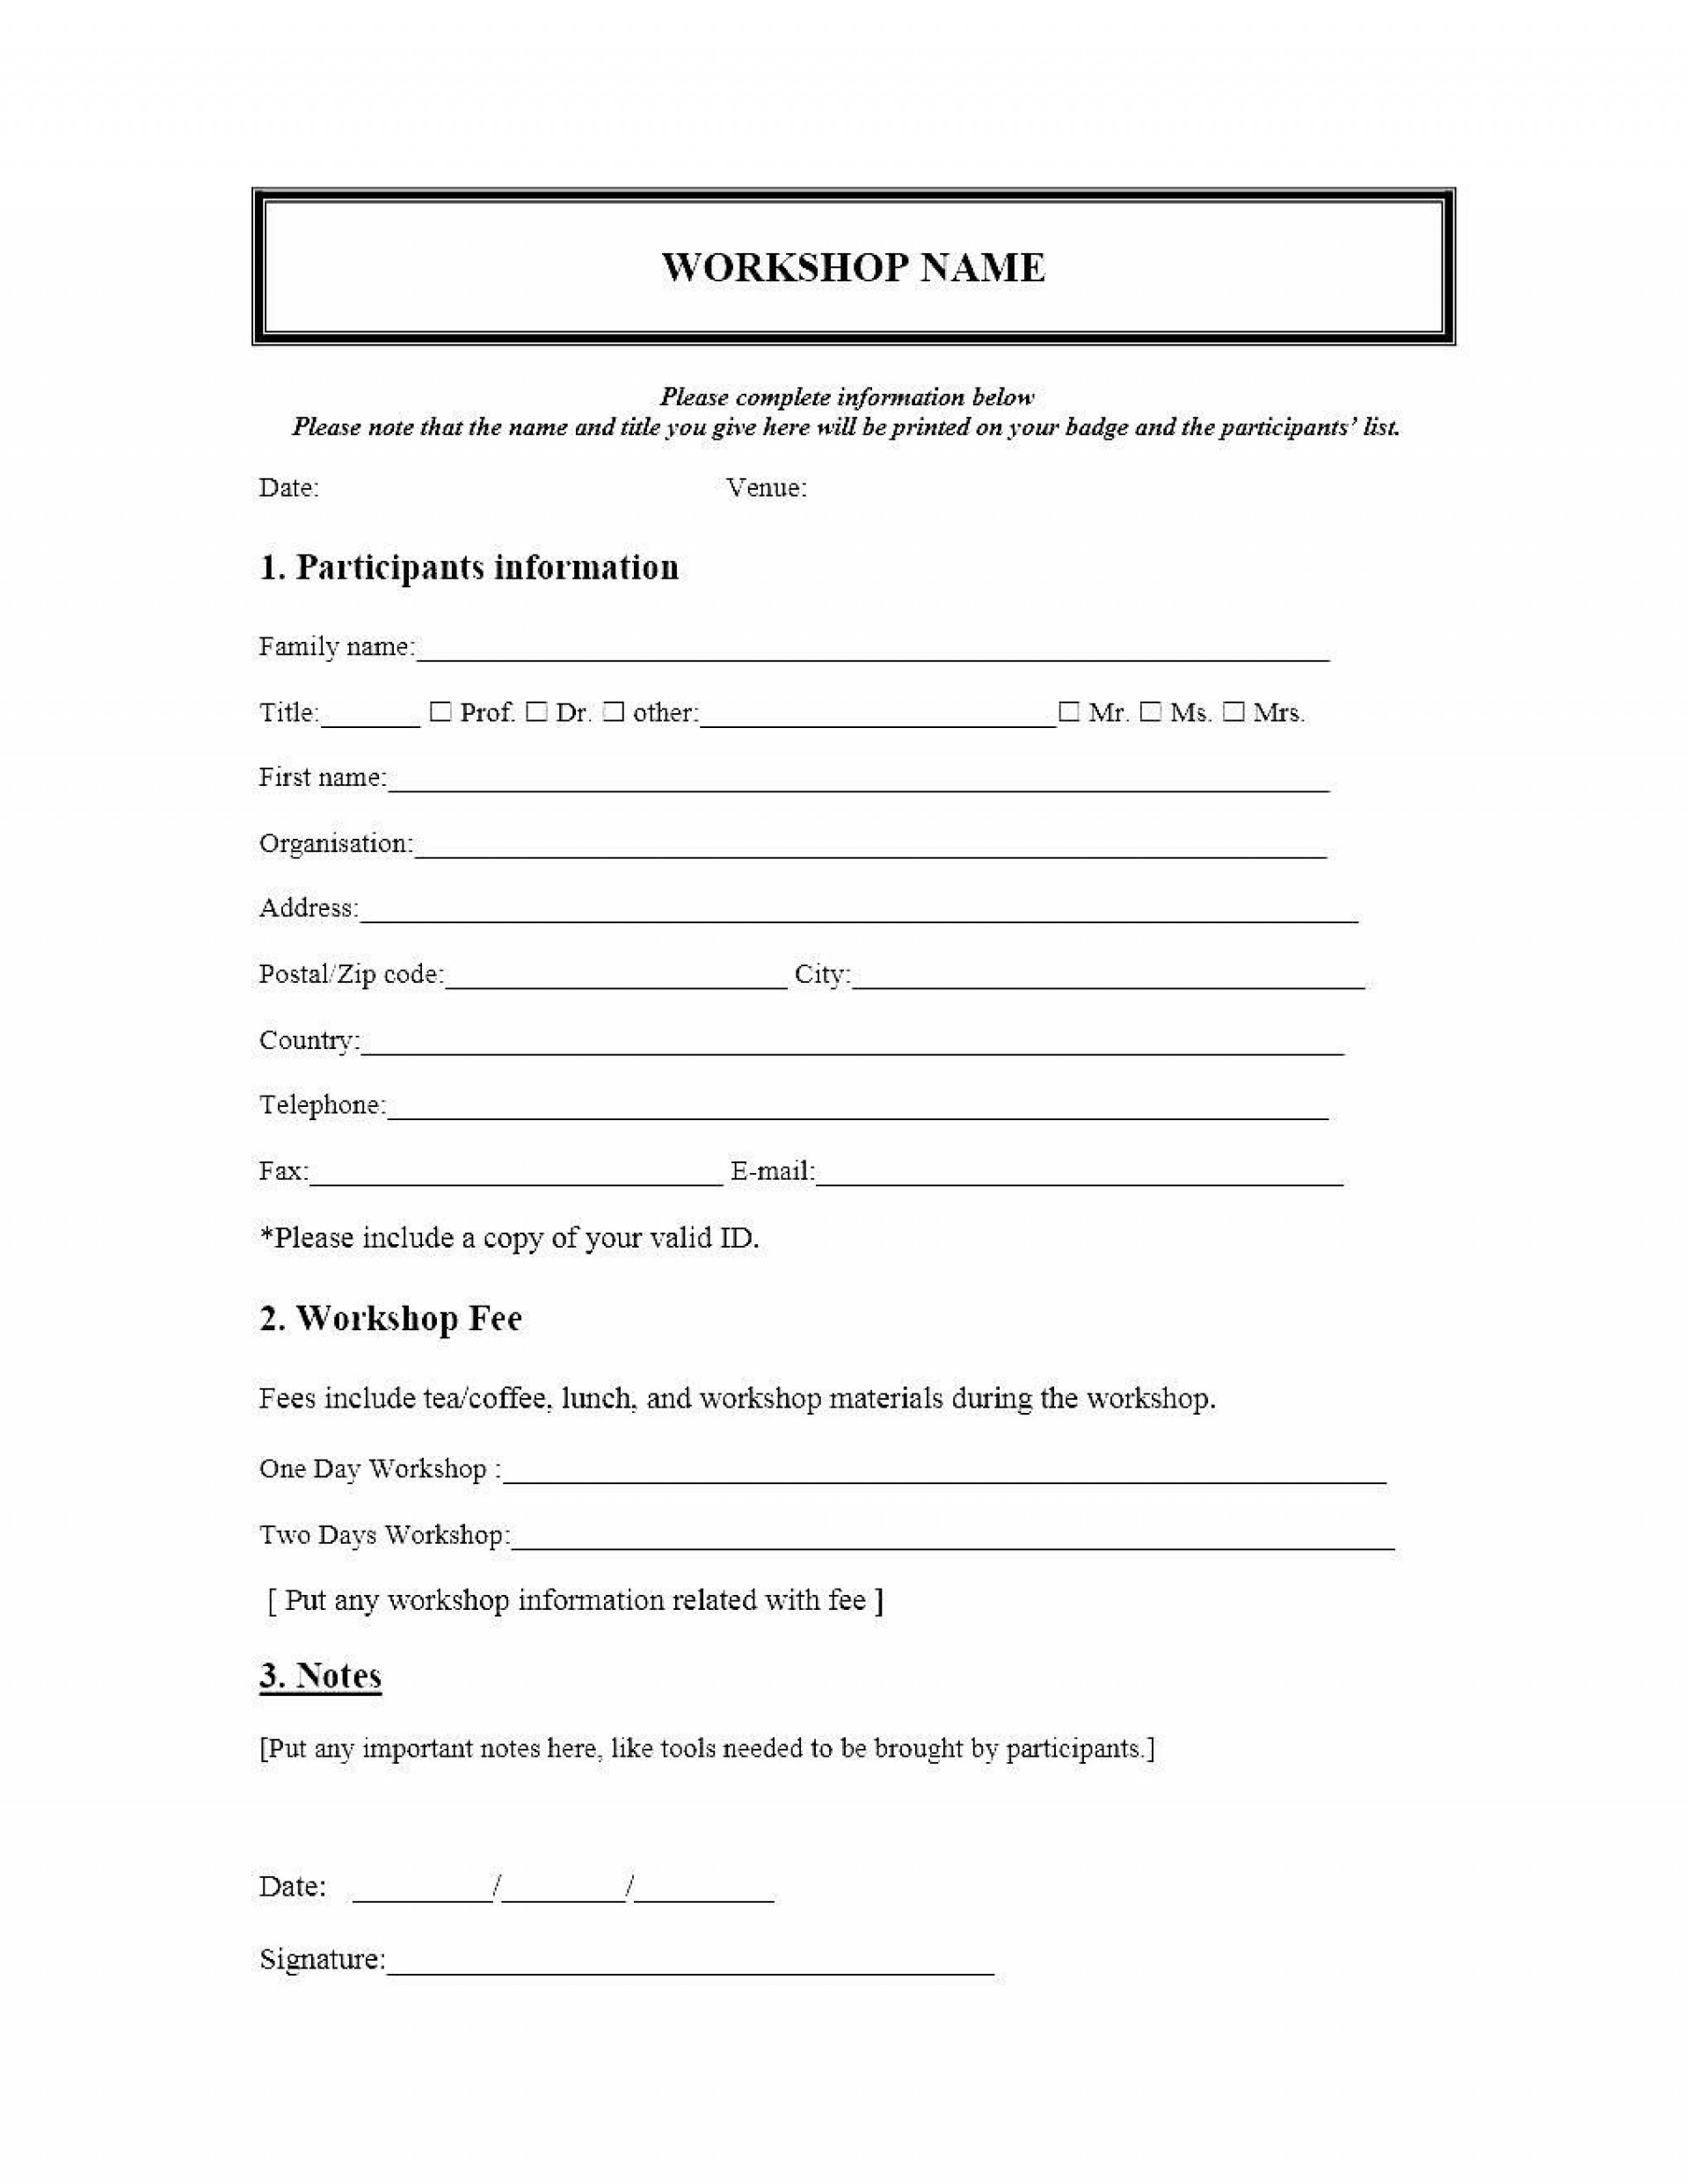 007 Stupendou Registration Form Template Word Image  Conference Free1920